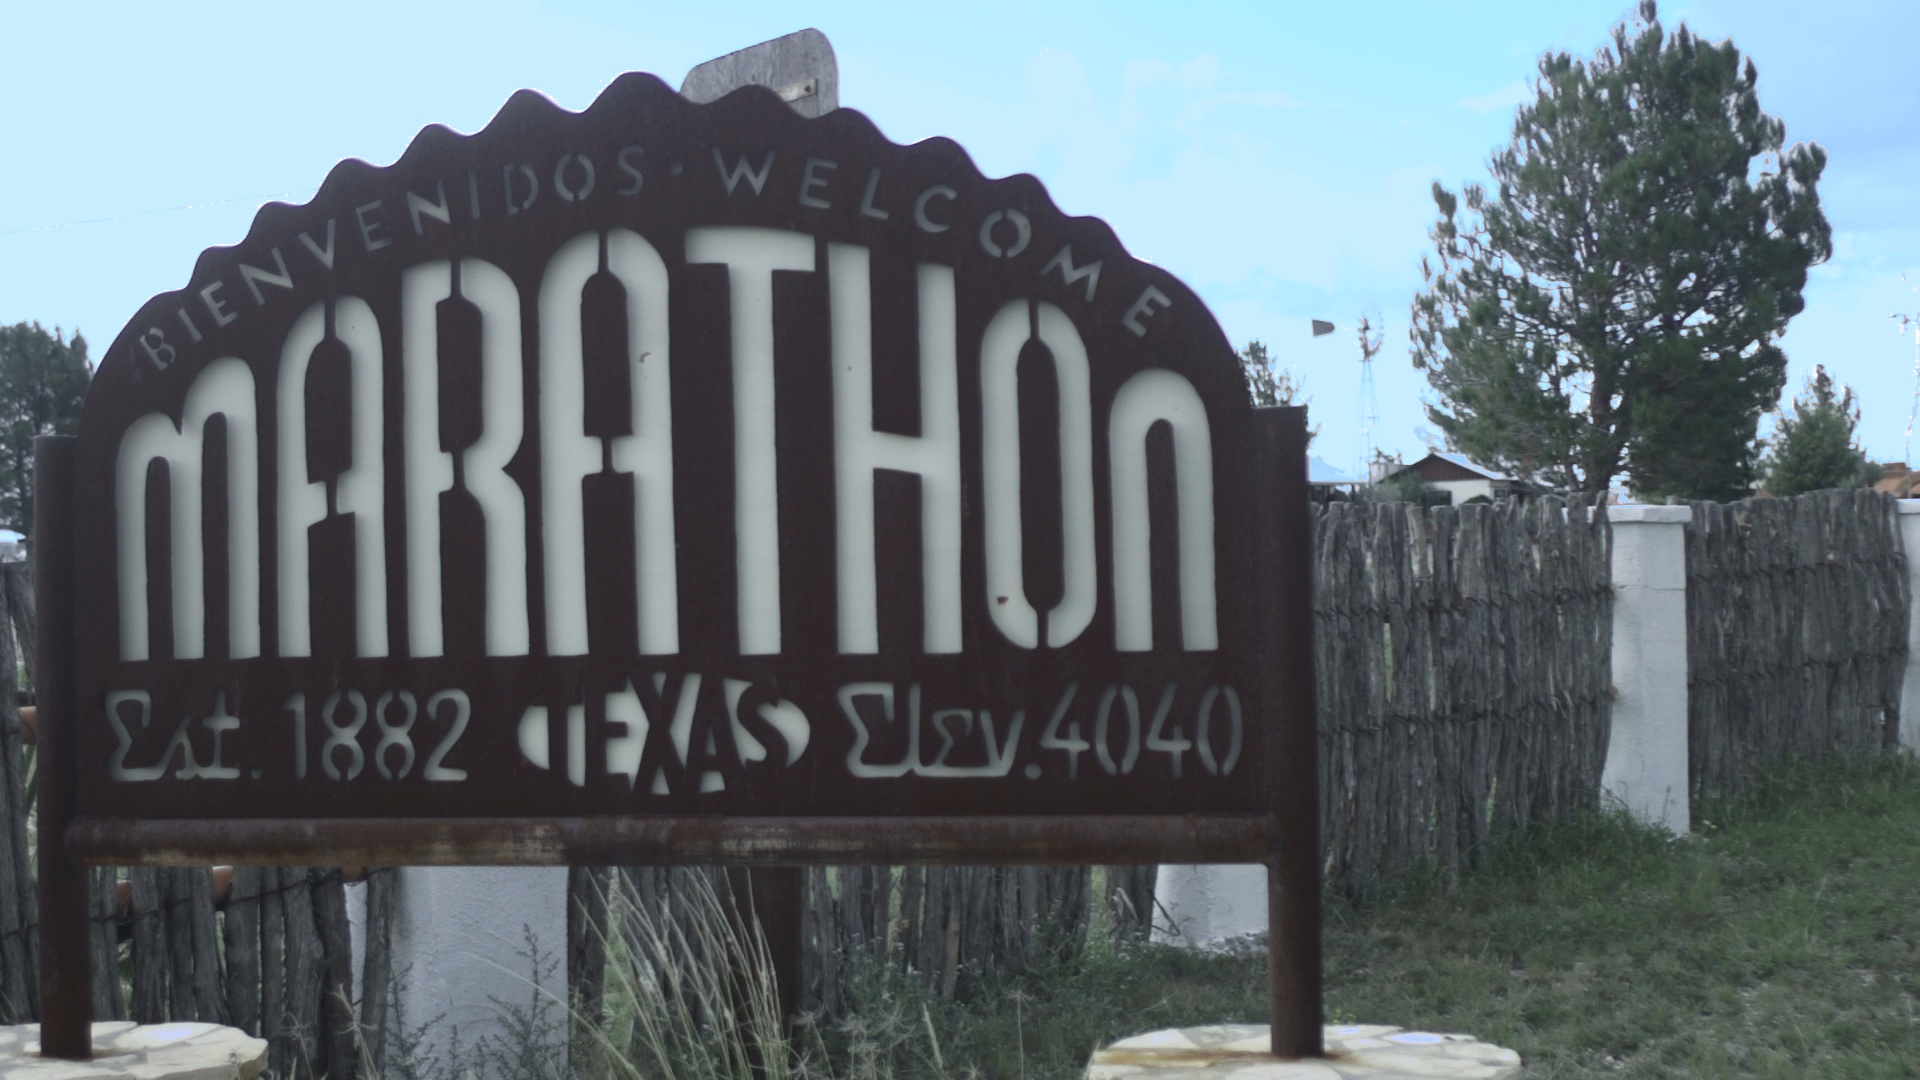 Marathon, Texas Sign